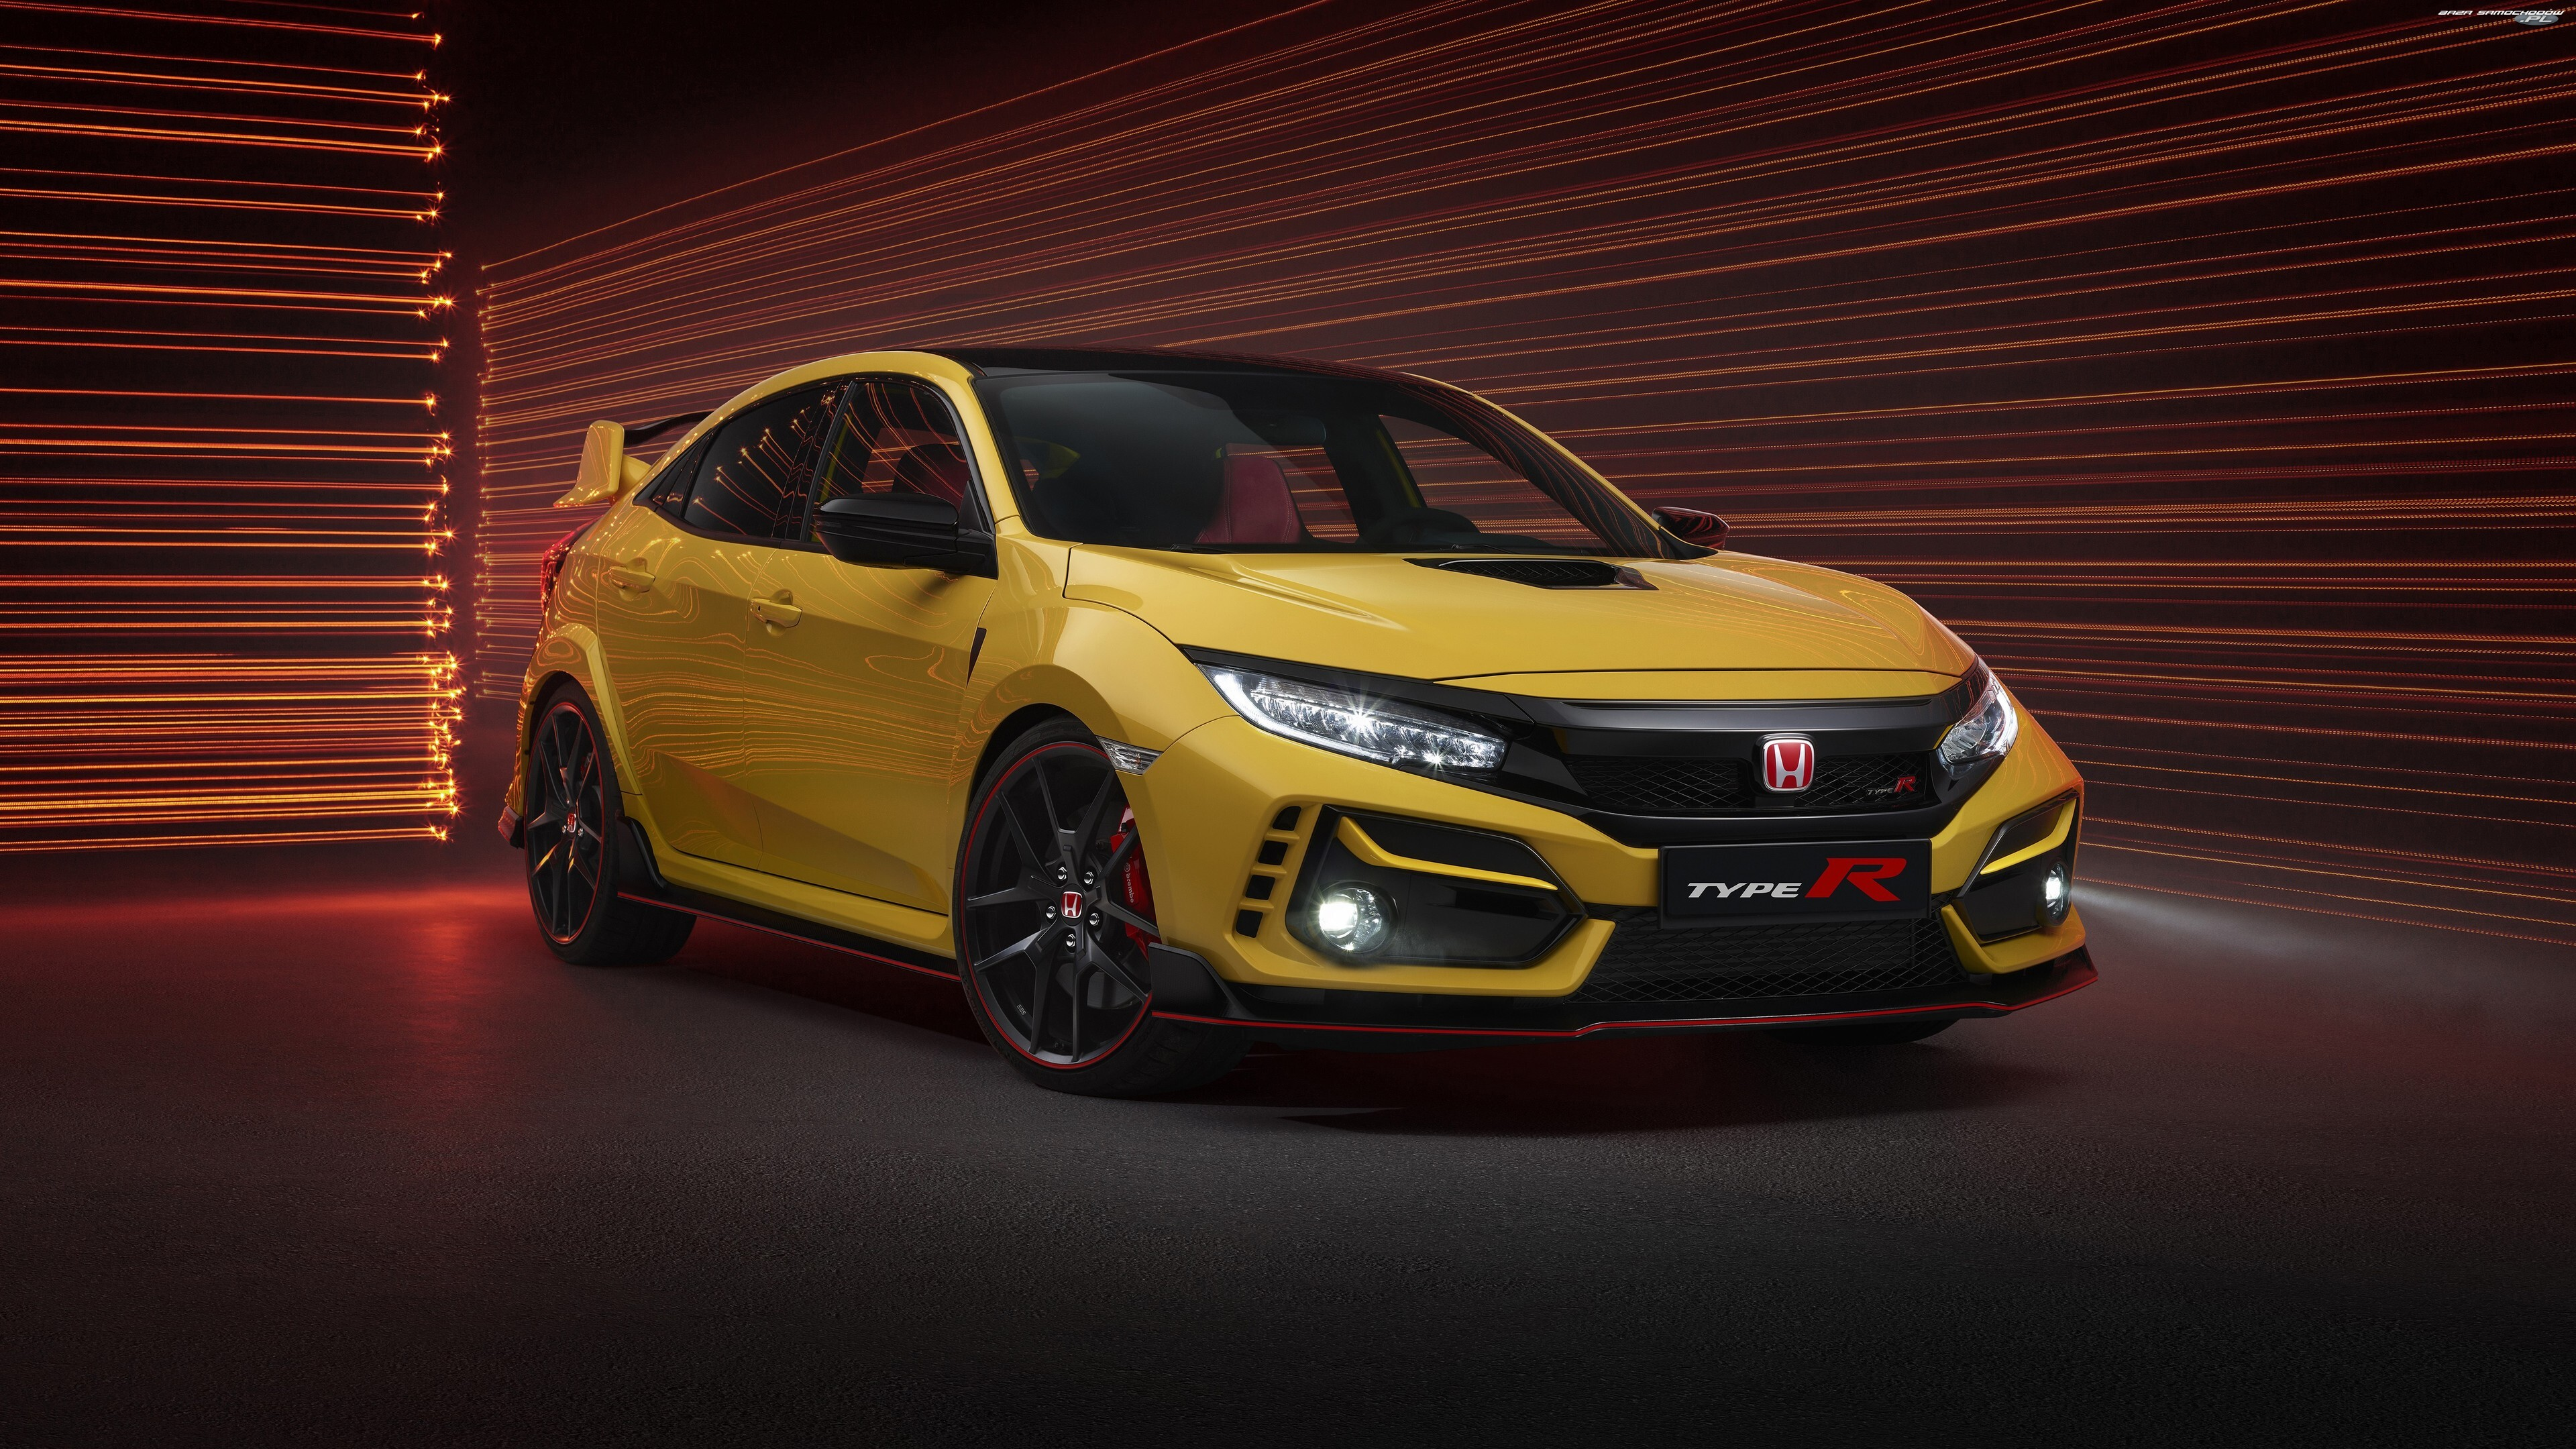 2020, Żółta, Honda Civic Type-R